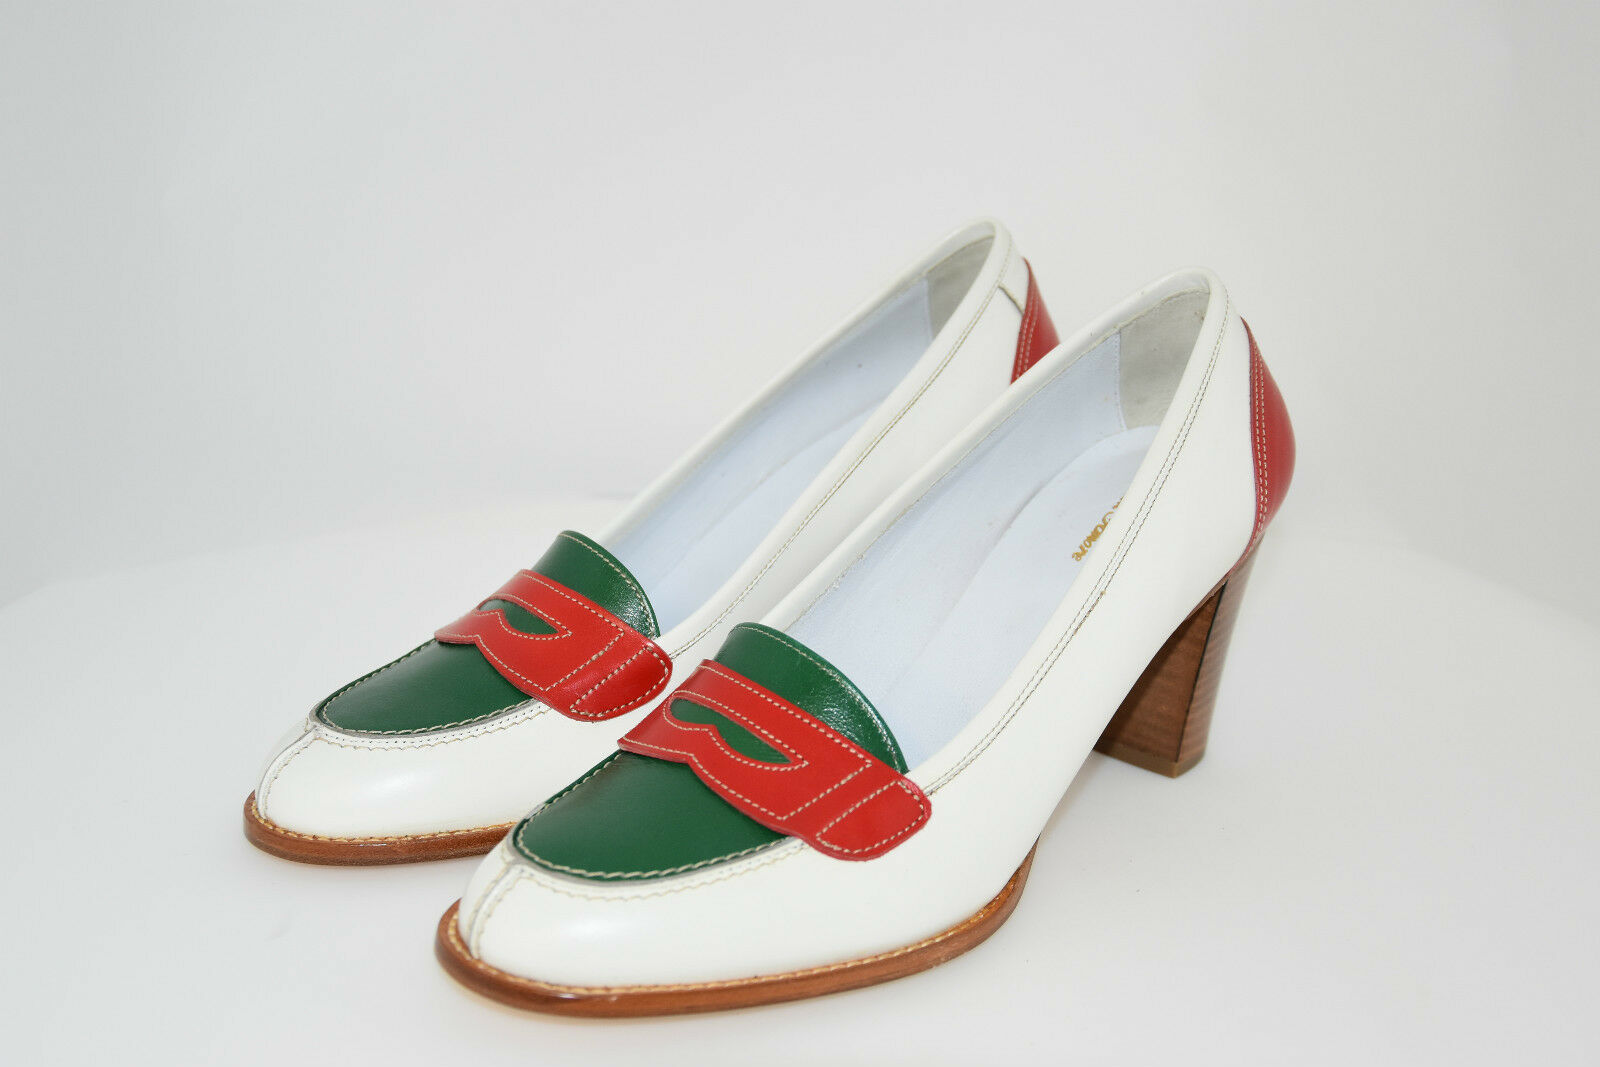 WOMAN-39eu-LOAFER-MOCASSINO-CALF-VITELLO TRICOLORE-LEATHER TRICOLORE-LEATHER TRICOLORE-LEATHER SOLE- SUOLA CUOIO 18dc81